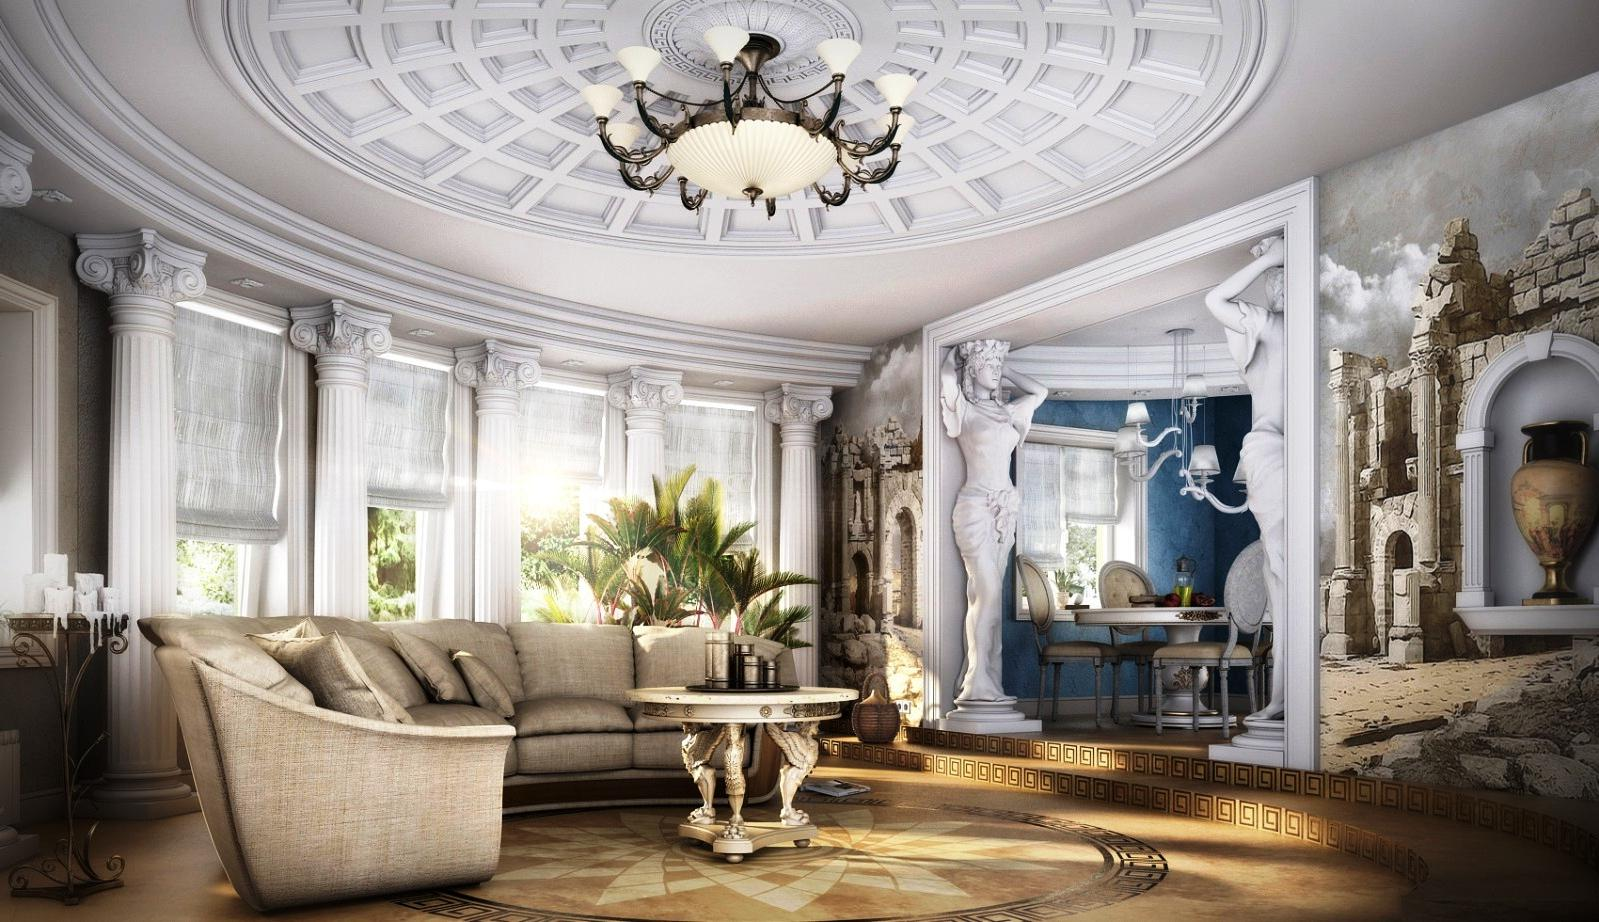 Grandeur design for the Classic styled room with antique statues